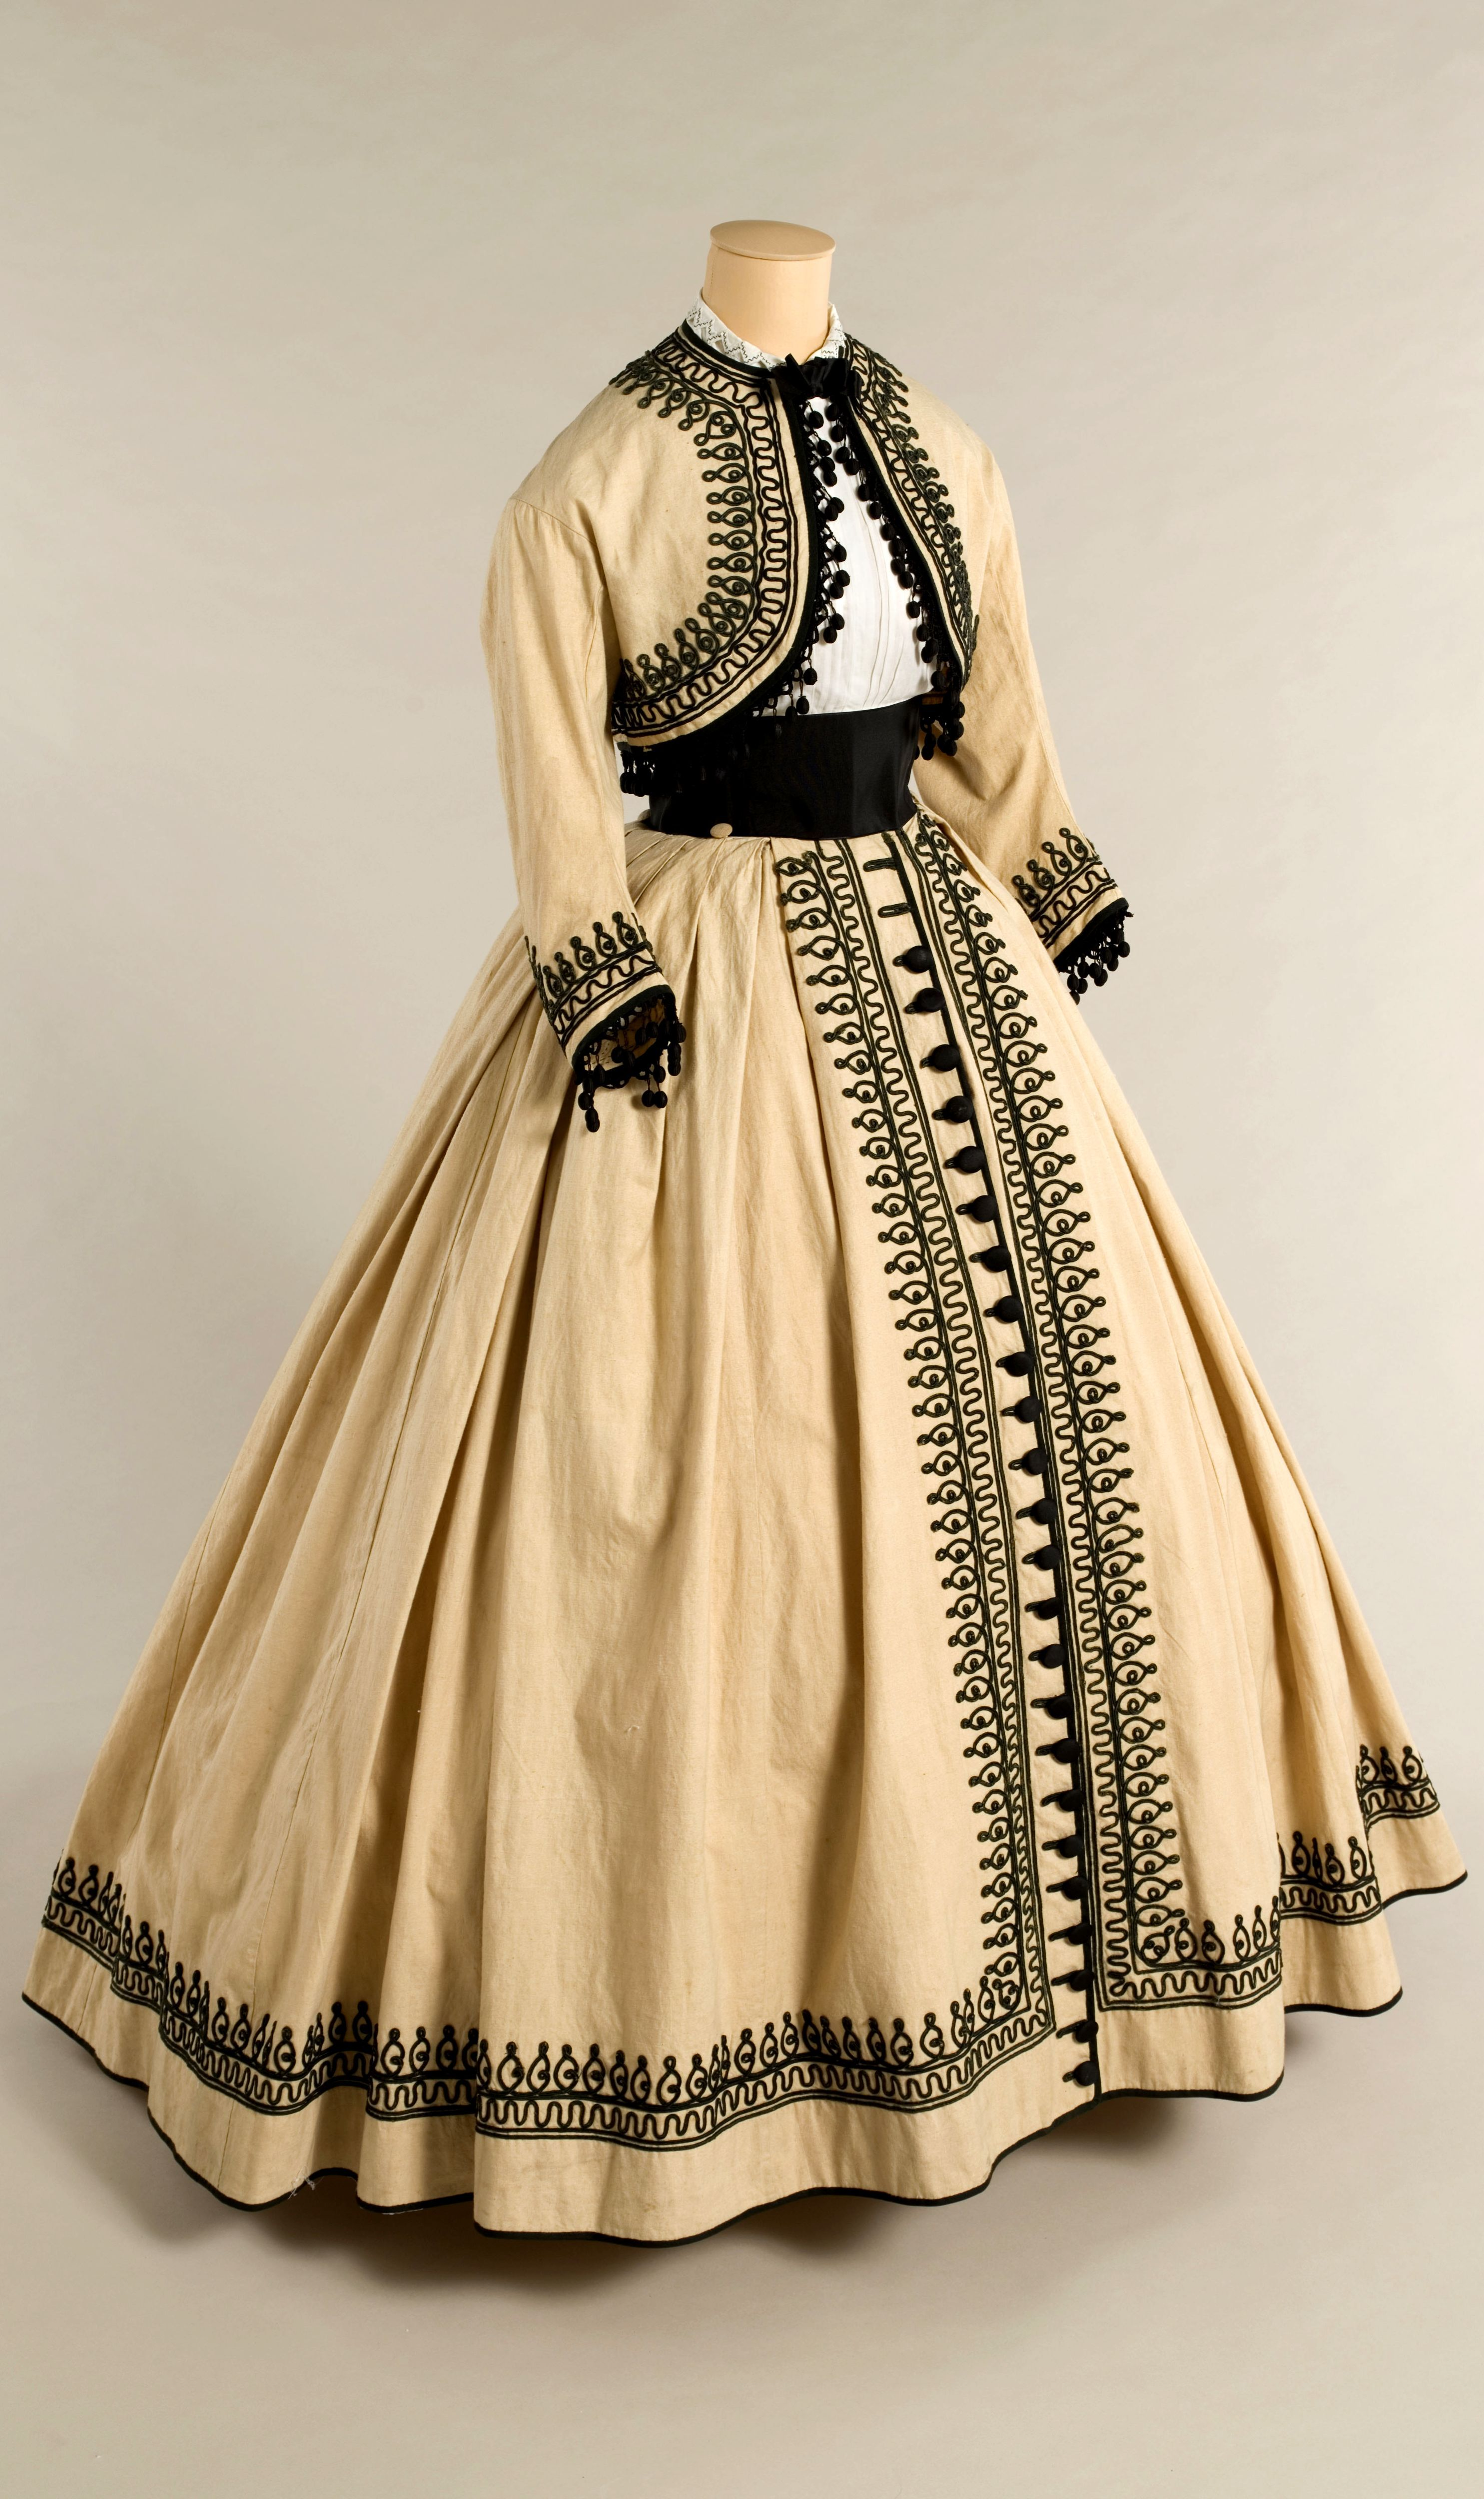 Historical Gold Beize Printed Dresses Historical Dresses Fashion Victorian Fashion [ 5000 x 2970 Pixel ]